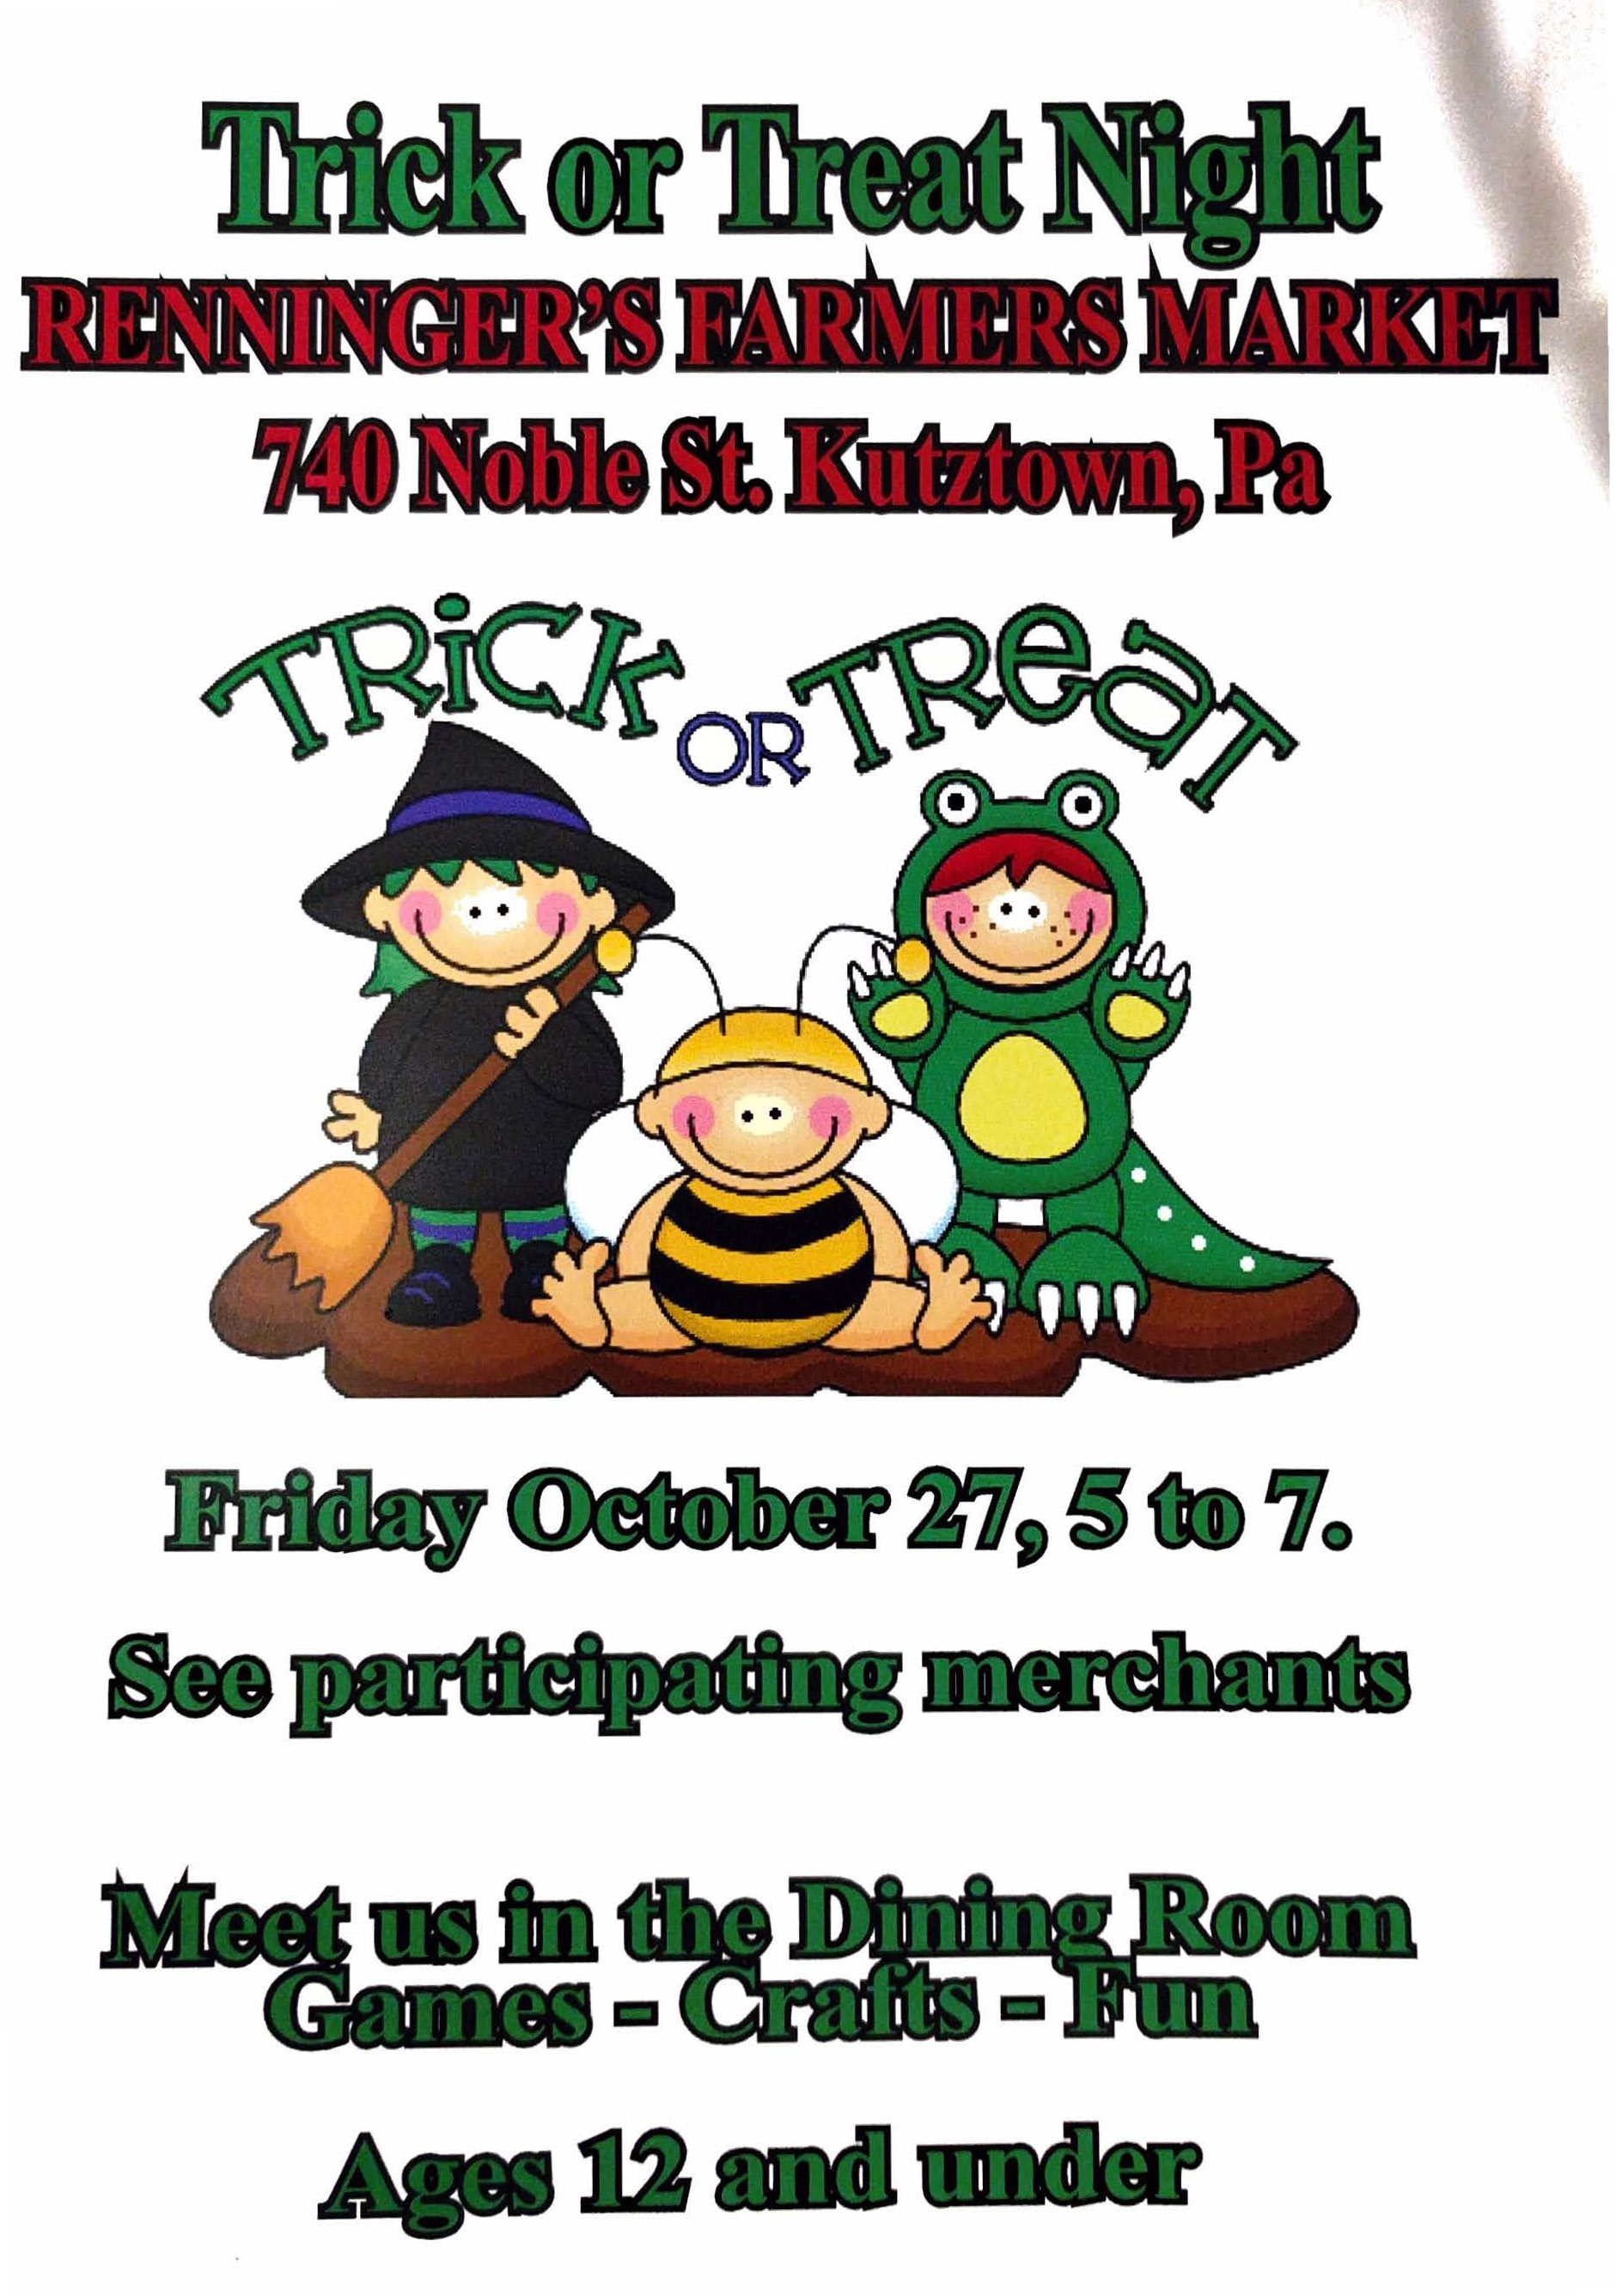 ITrick or Treat Night, Renninger's Kutztown: October 27th